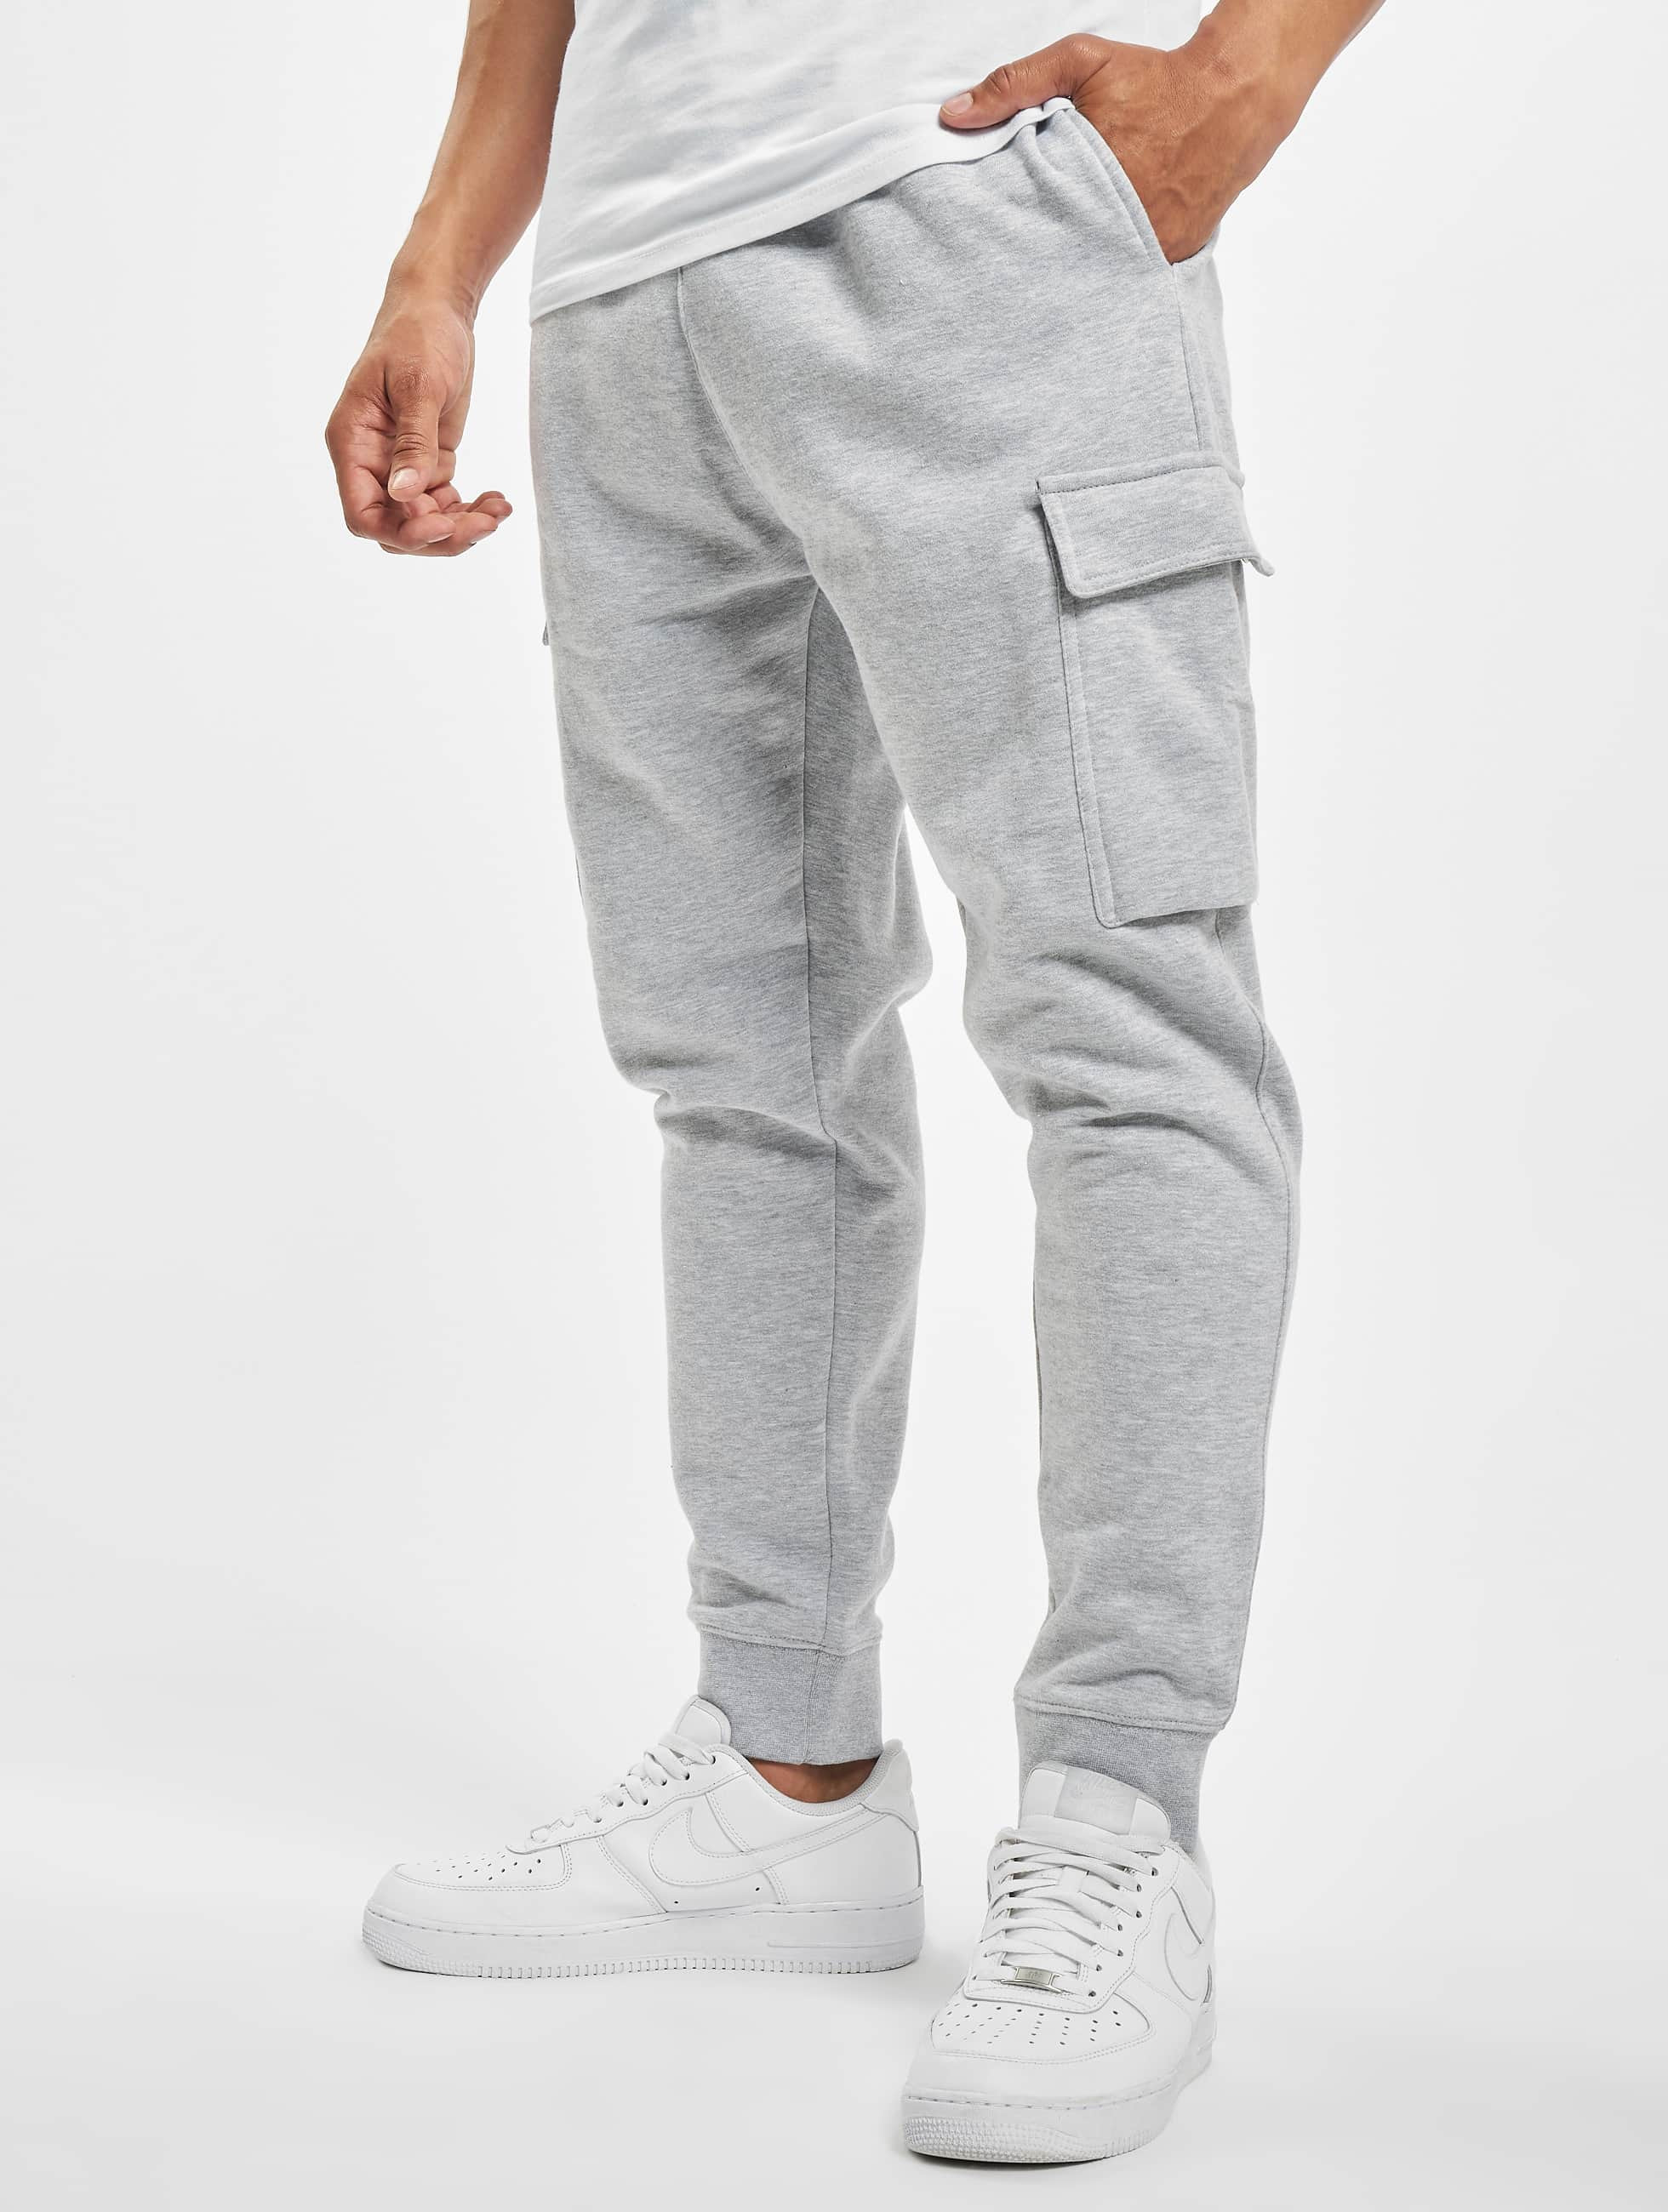 DEF / Sweat Pant Denni in grey S